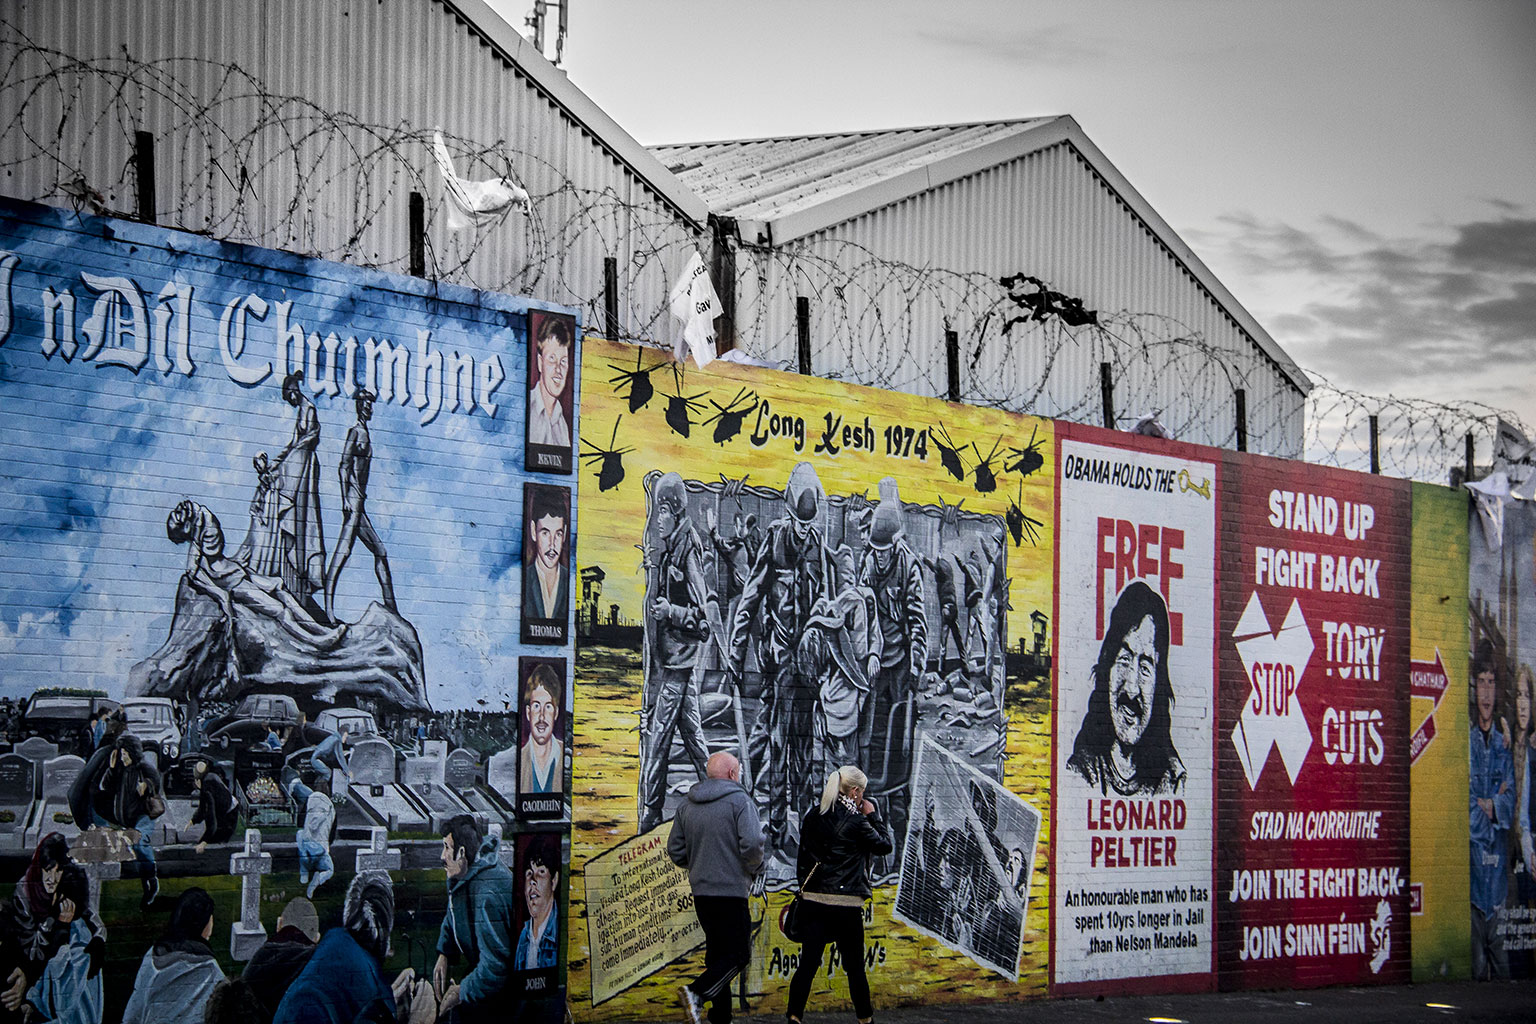 Photograph of a peace wall in Belfast by Diego López